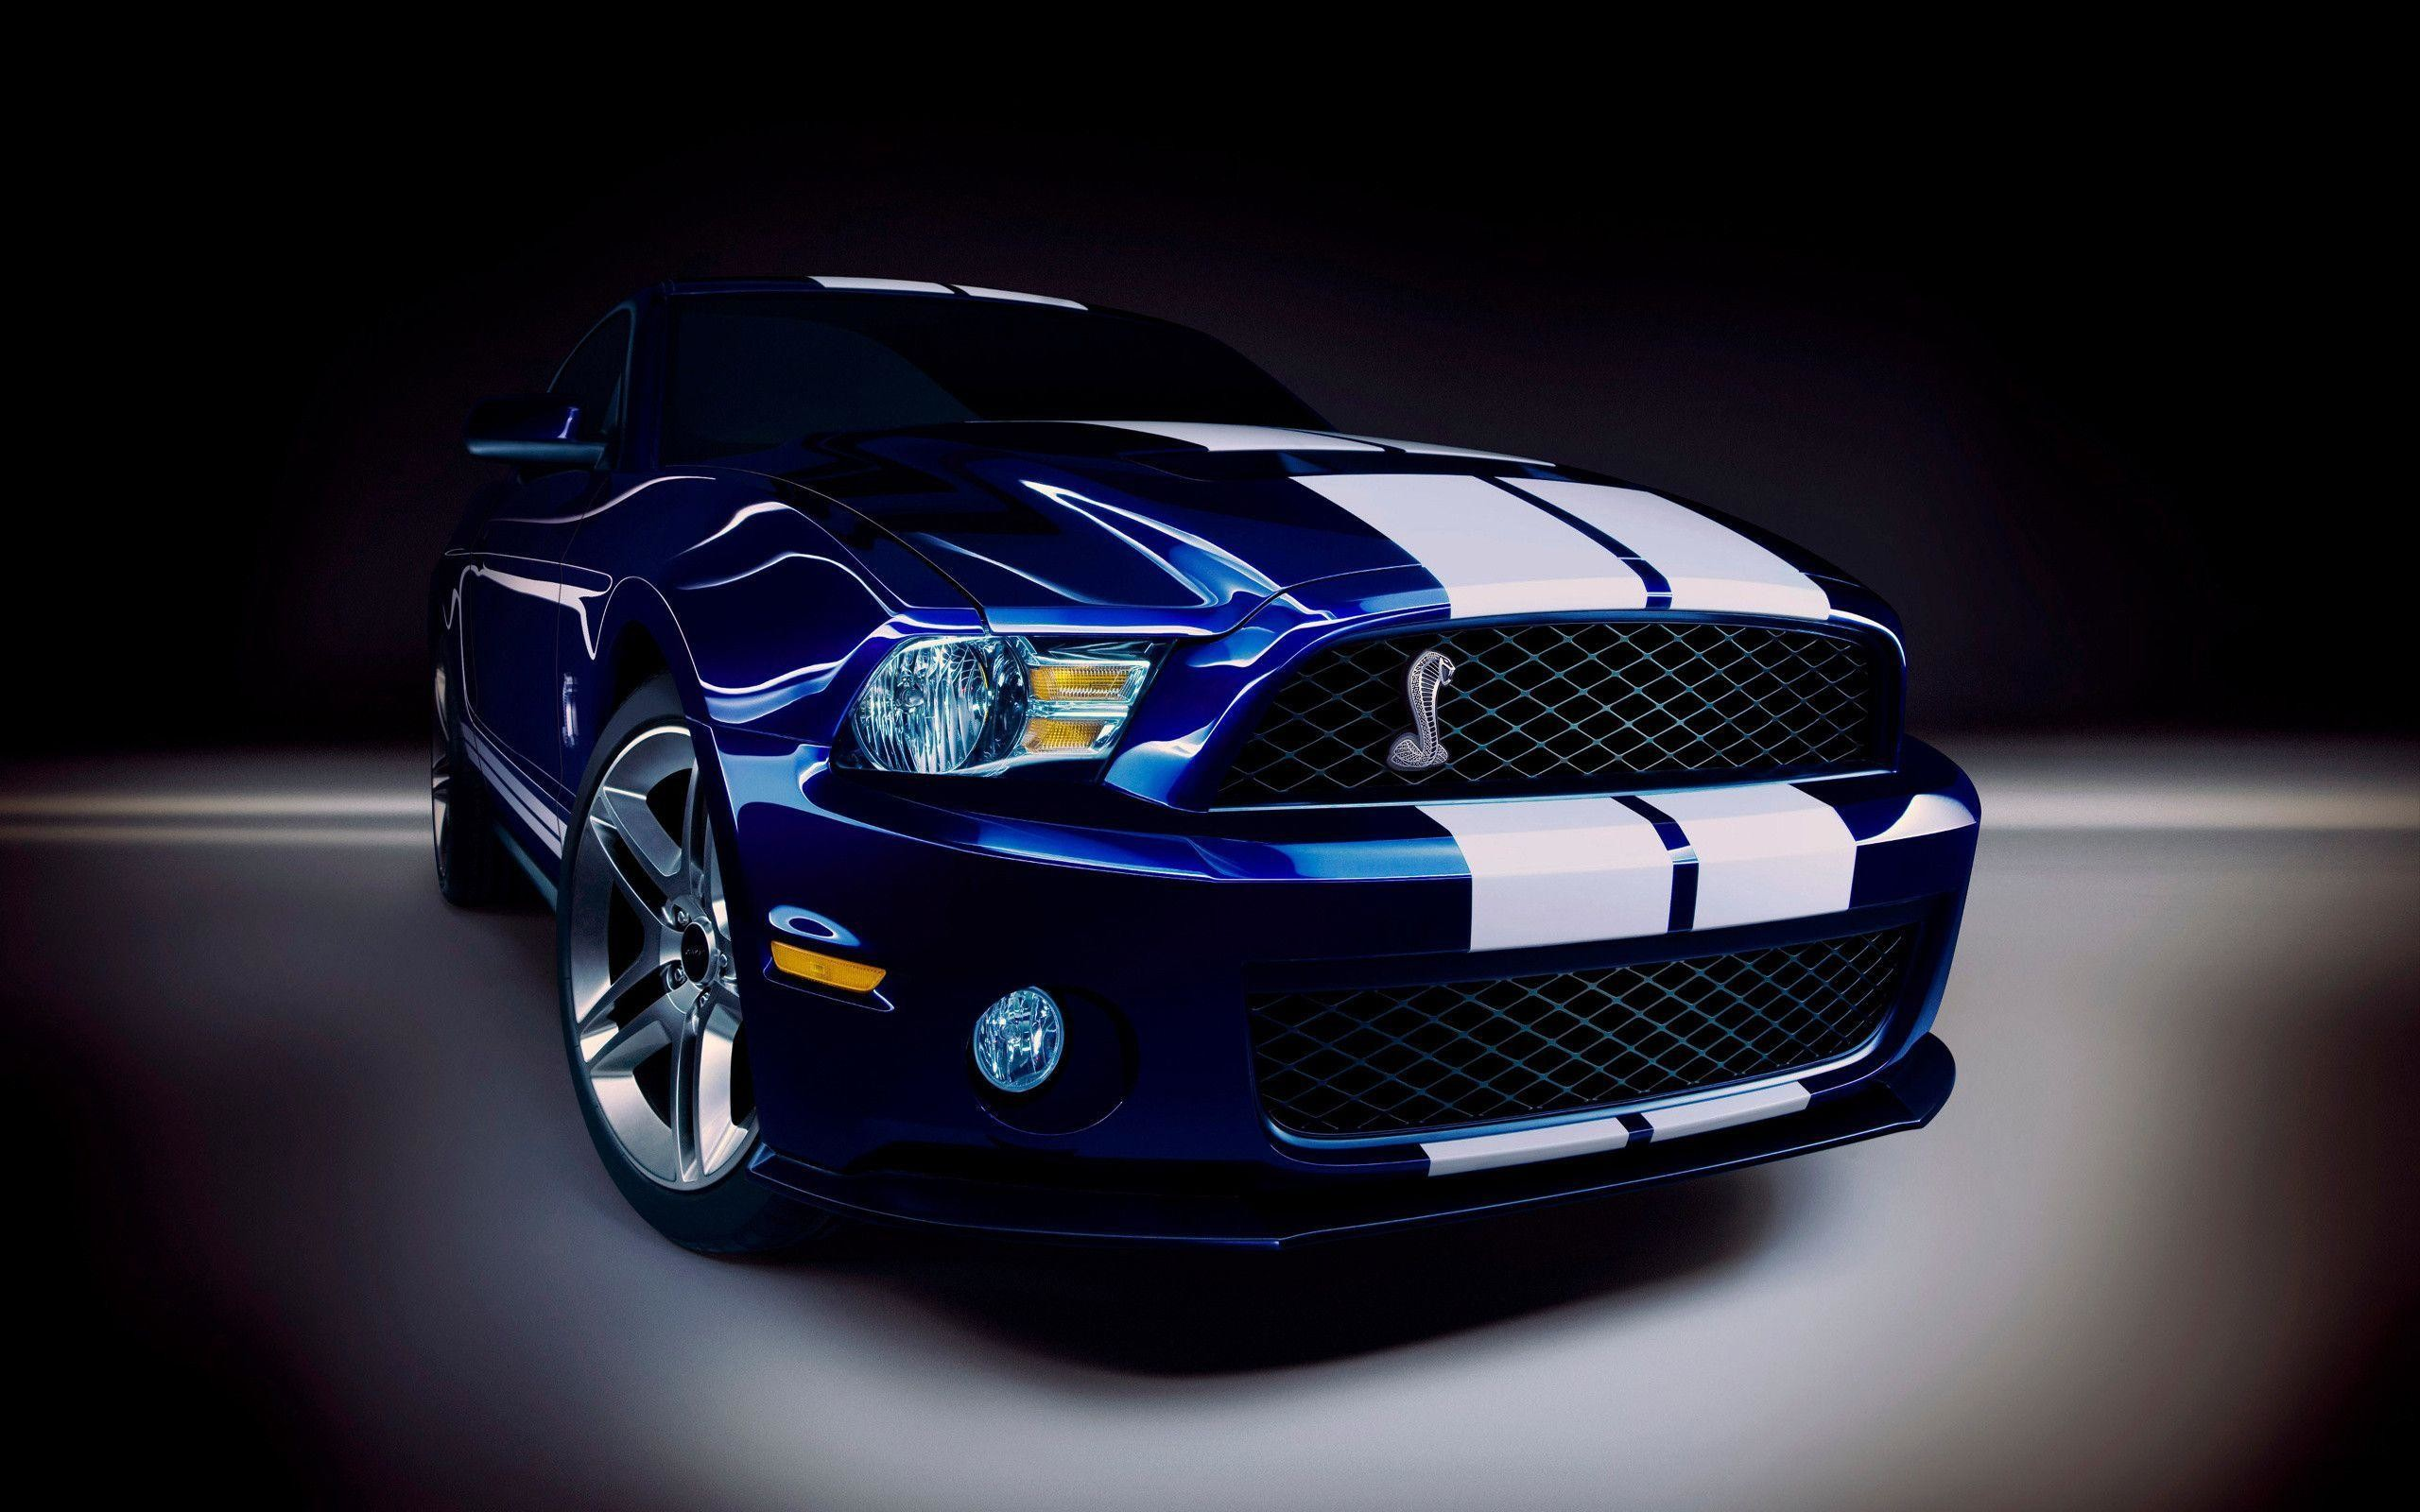 Cool Ford Mustang Muscle Car Wallpapers – imageswall.com